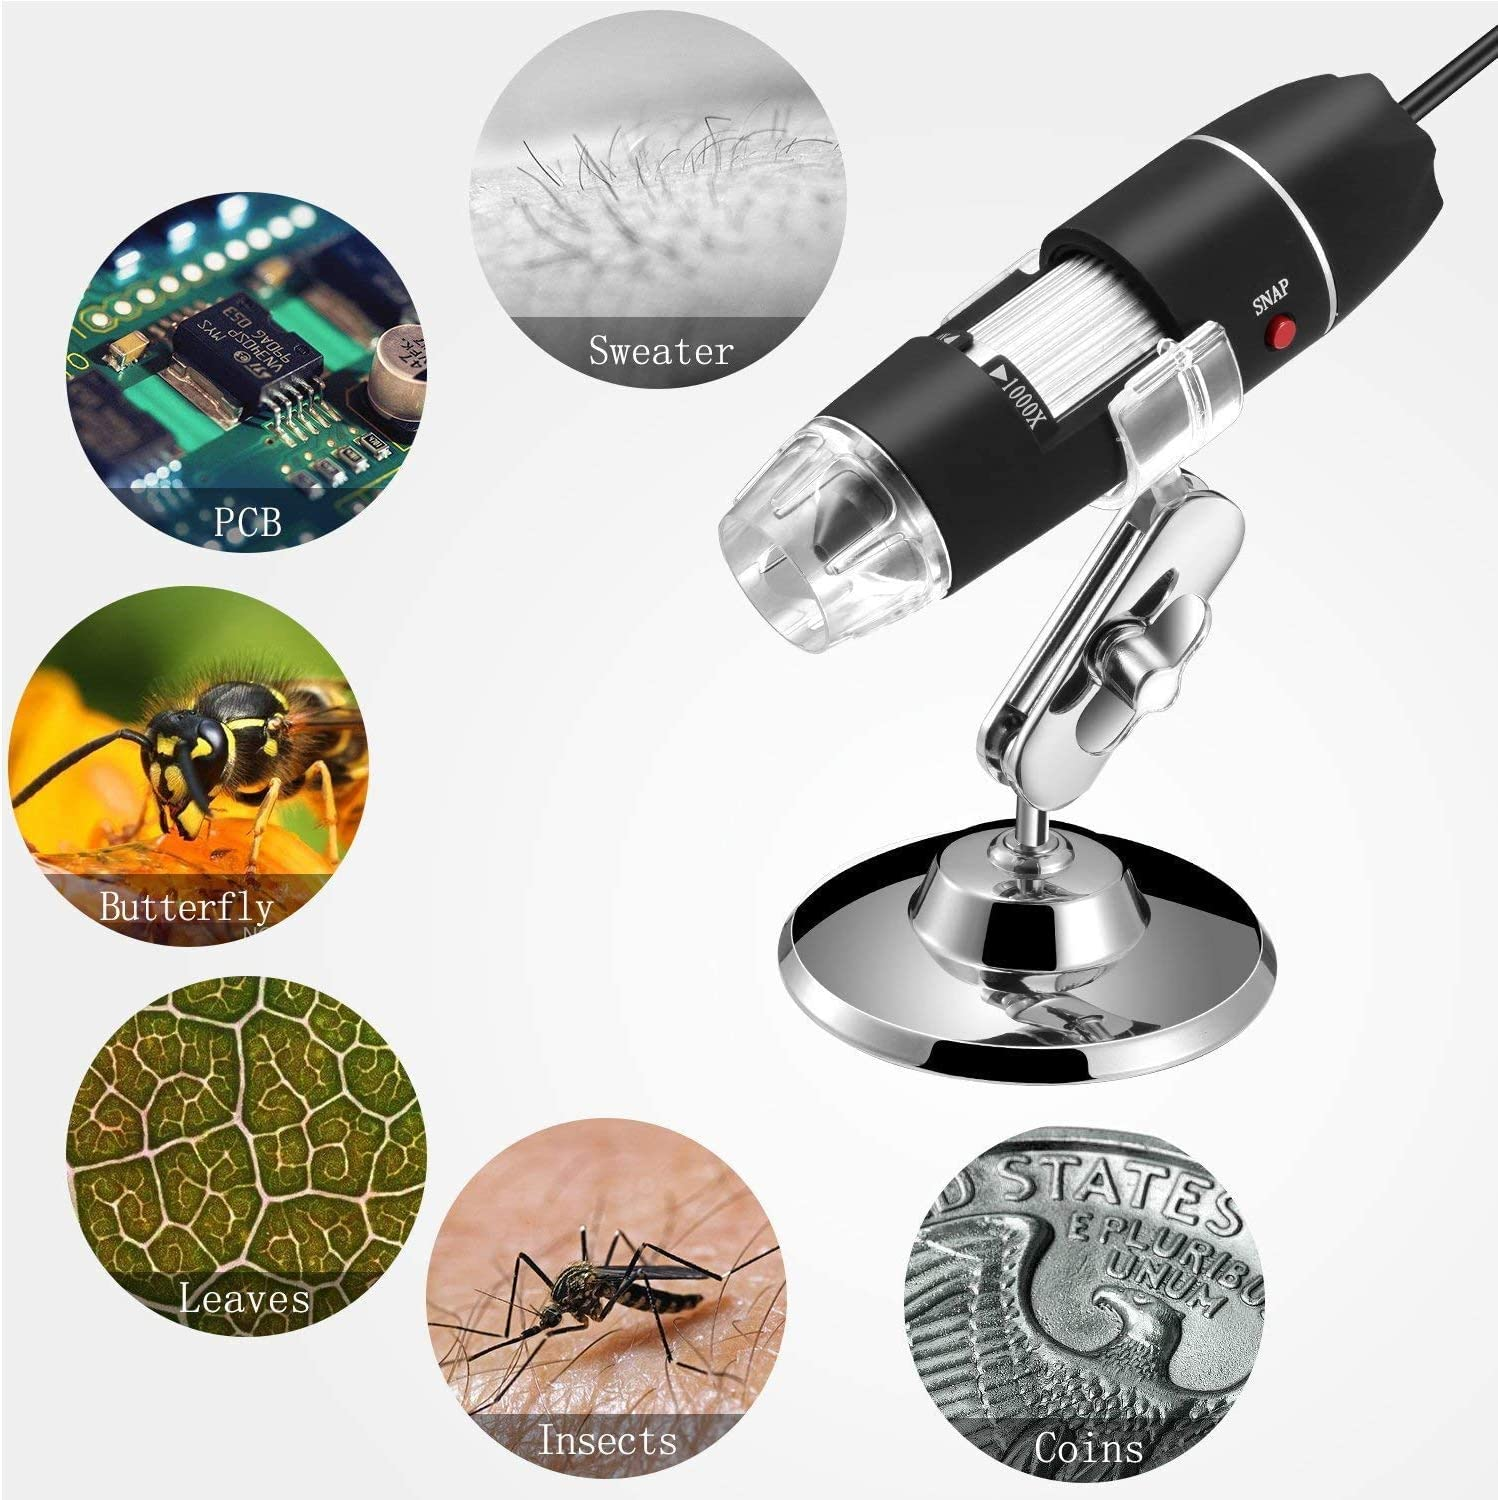 Compatible with Mac Window 7 8 10 Android Linux 8 LED USB 2.0 Digital Microscope Mini Camera with OTG Adapter and Metal Stand 40 to 1000x Magnification Endoscope